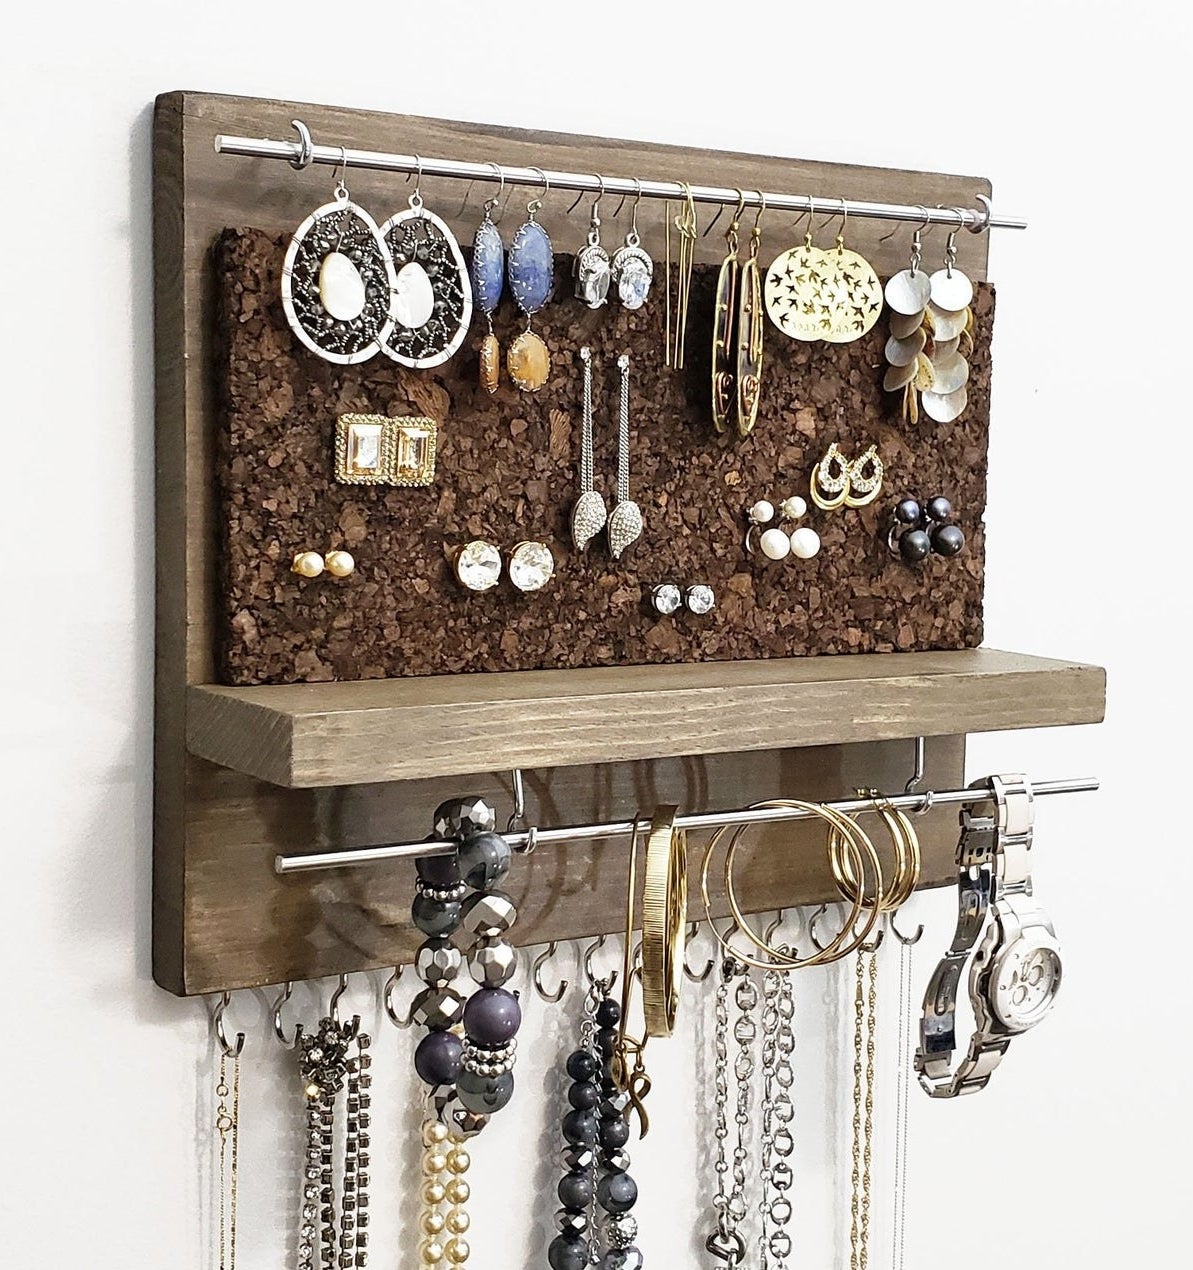 photo of the jewelry organizer styled with necklaces and bracelets and earrings